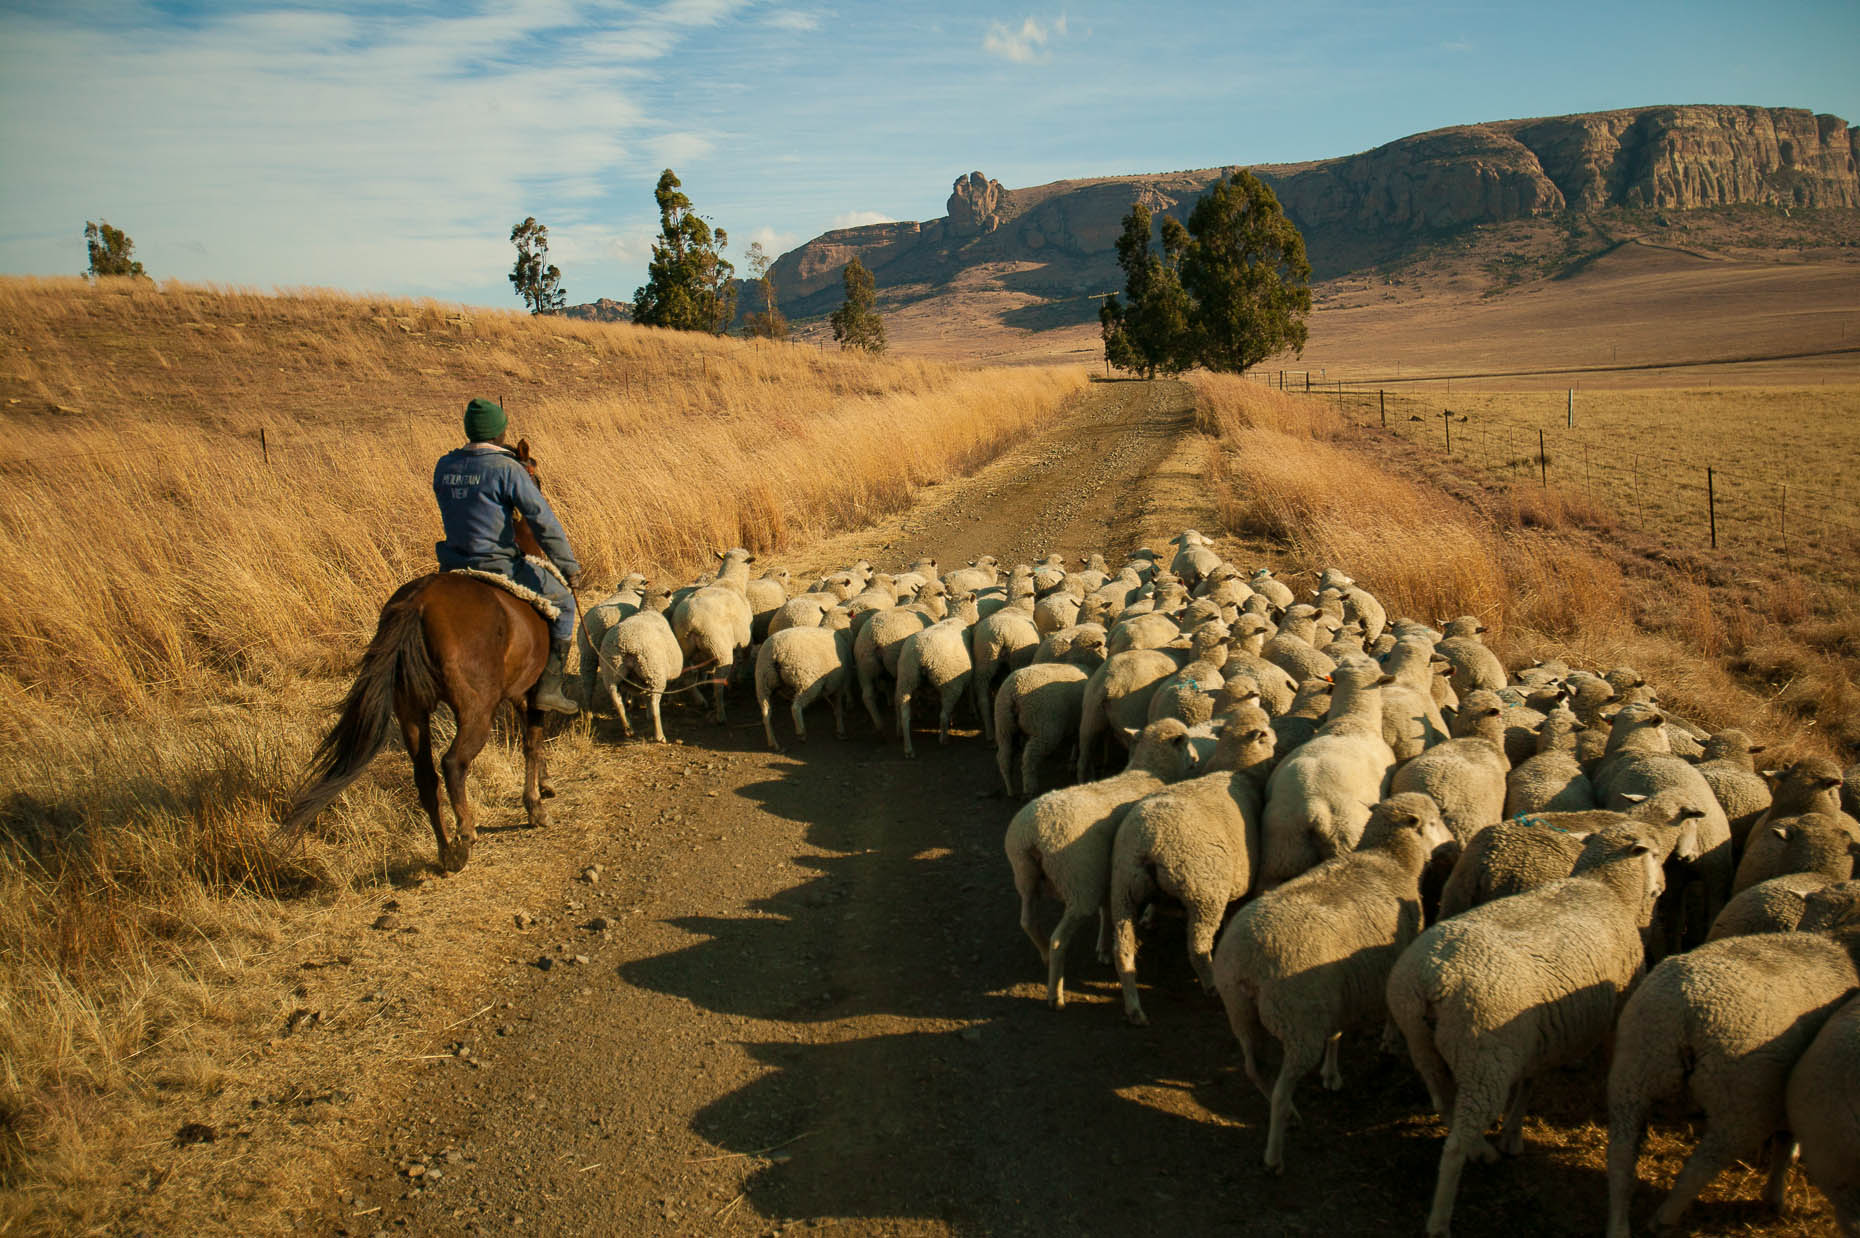 Shepherd-on-horseback-South-Africa